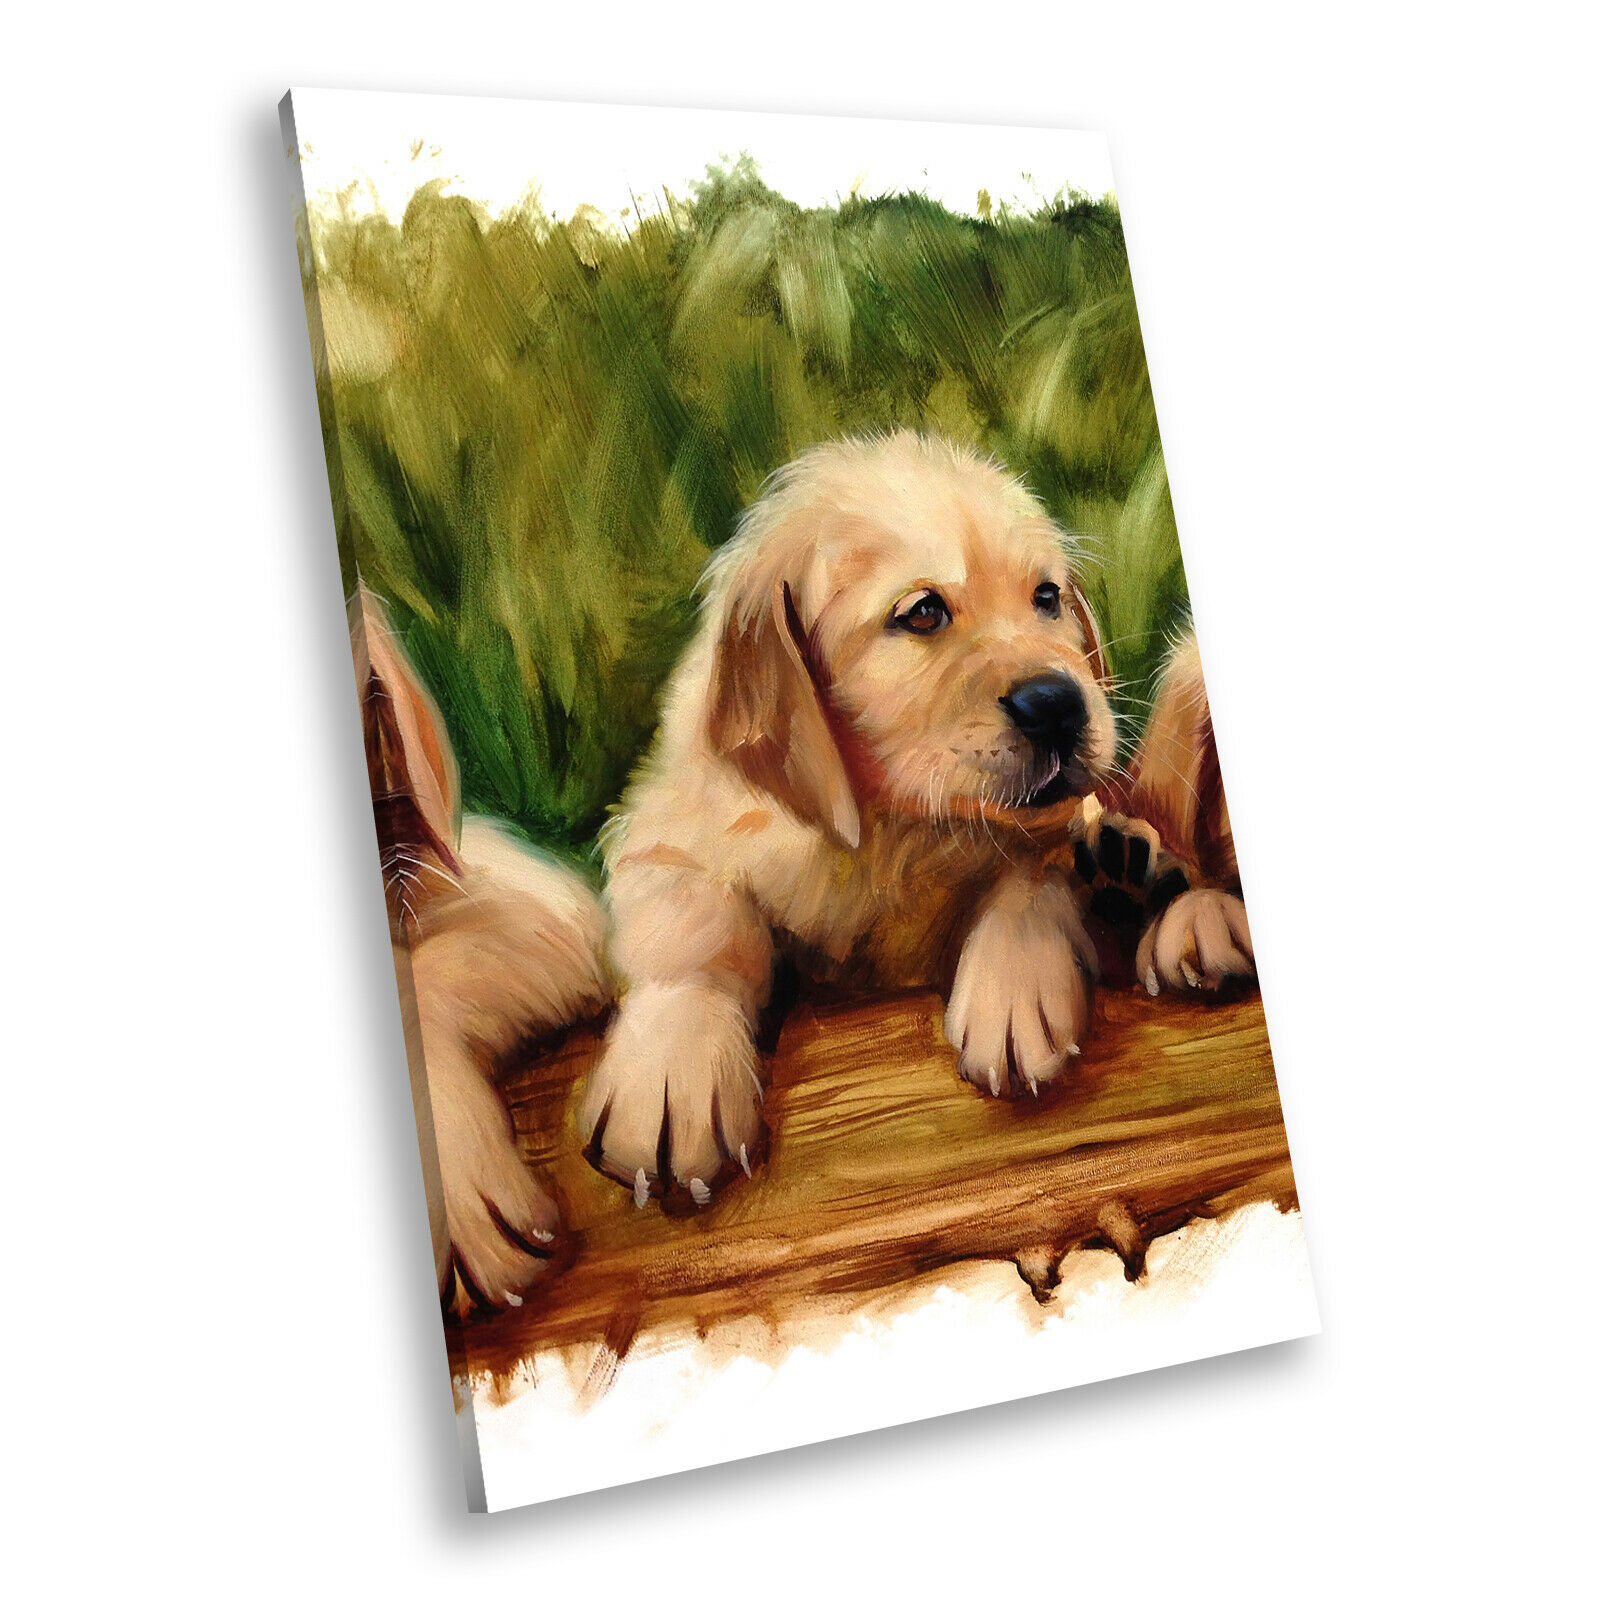 braun Puppies Cute Cool Portrait Animal Canvas Wall Art Large Picture Prints